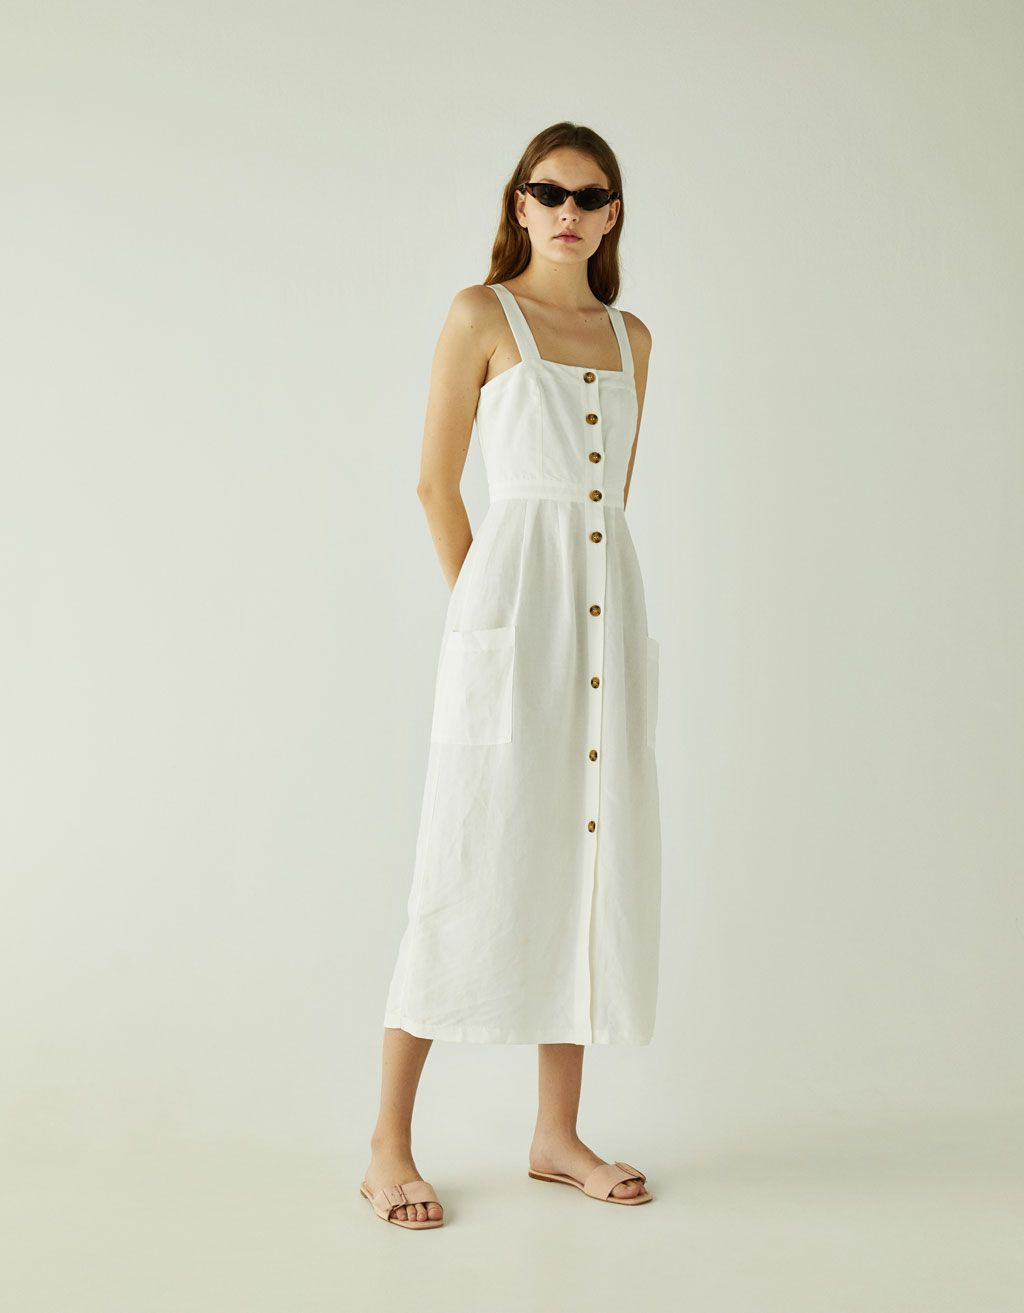 109761fe63e4d0 Linen midi dress with pockets. Discover this and many more items in Bershka  with new products every week